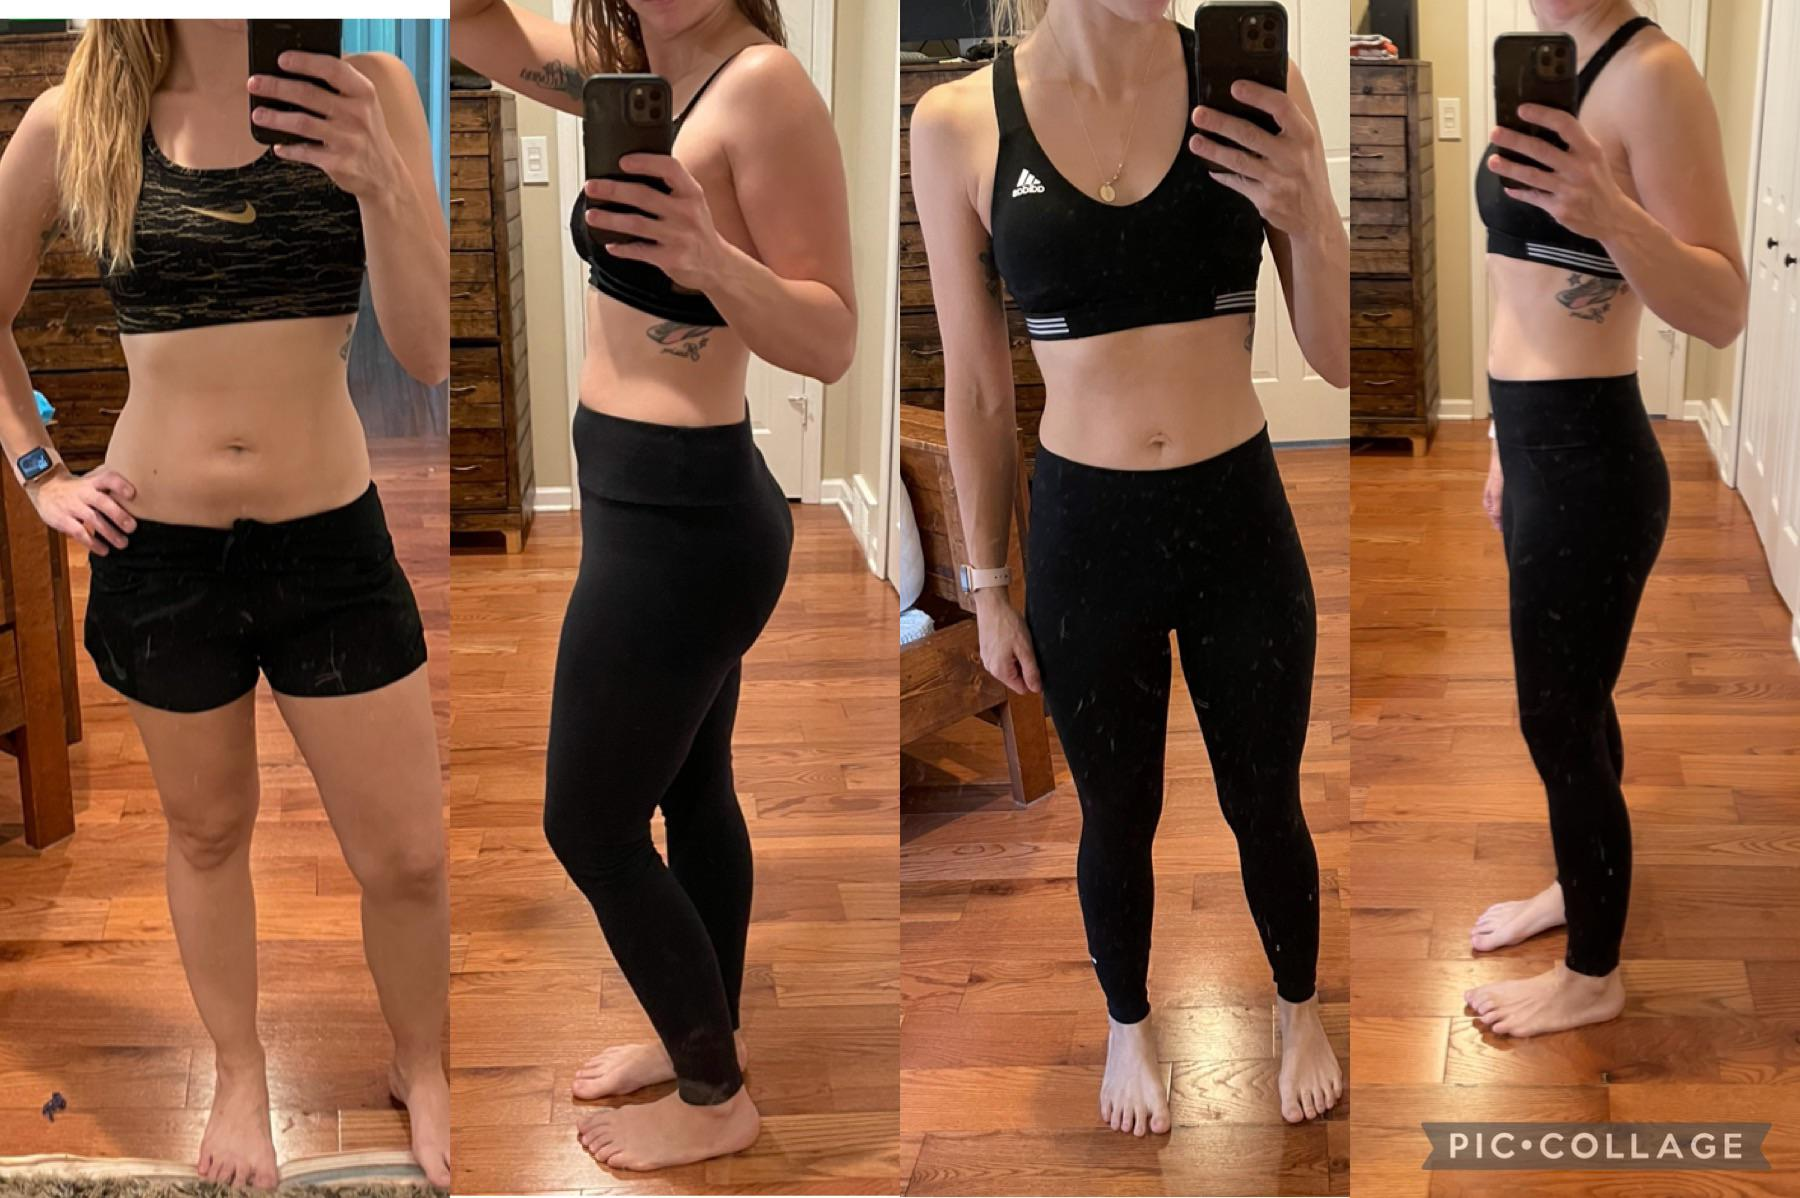 5 foot 5 Female 10 lbs Fat Loss Before and After 132 lbs to 122 lbs